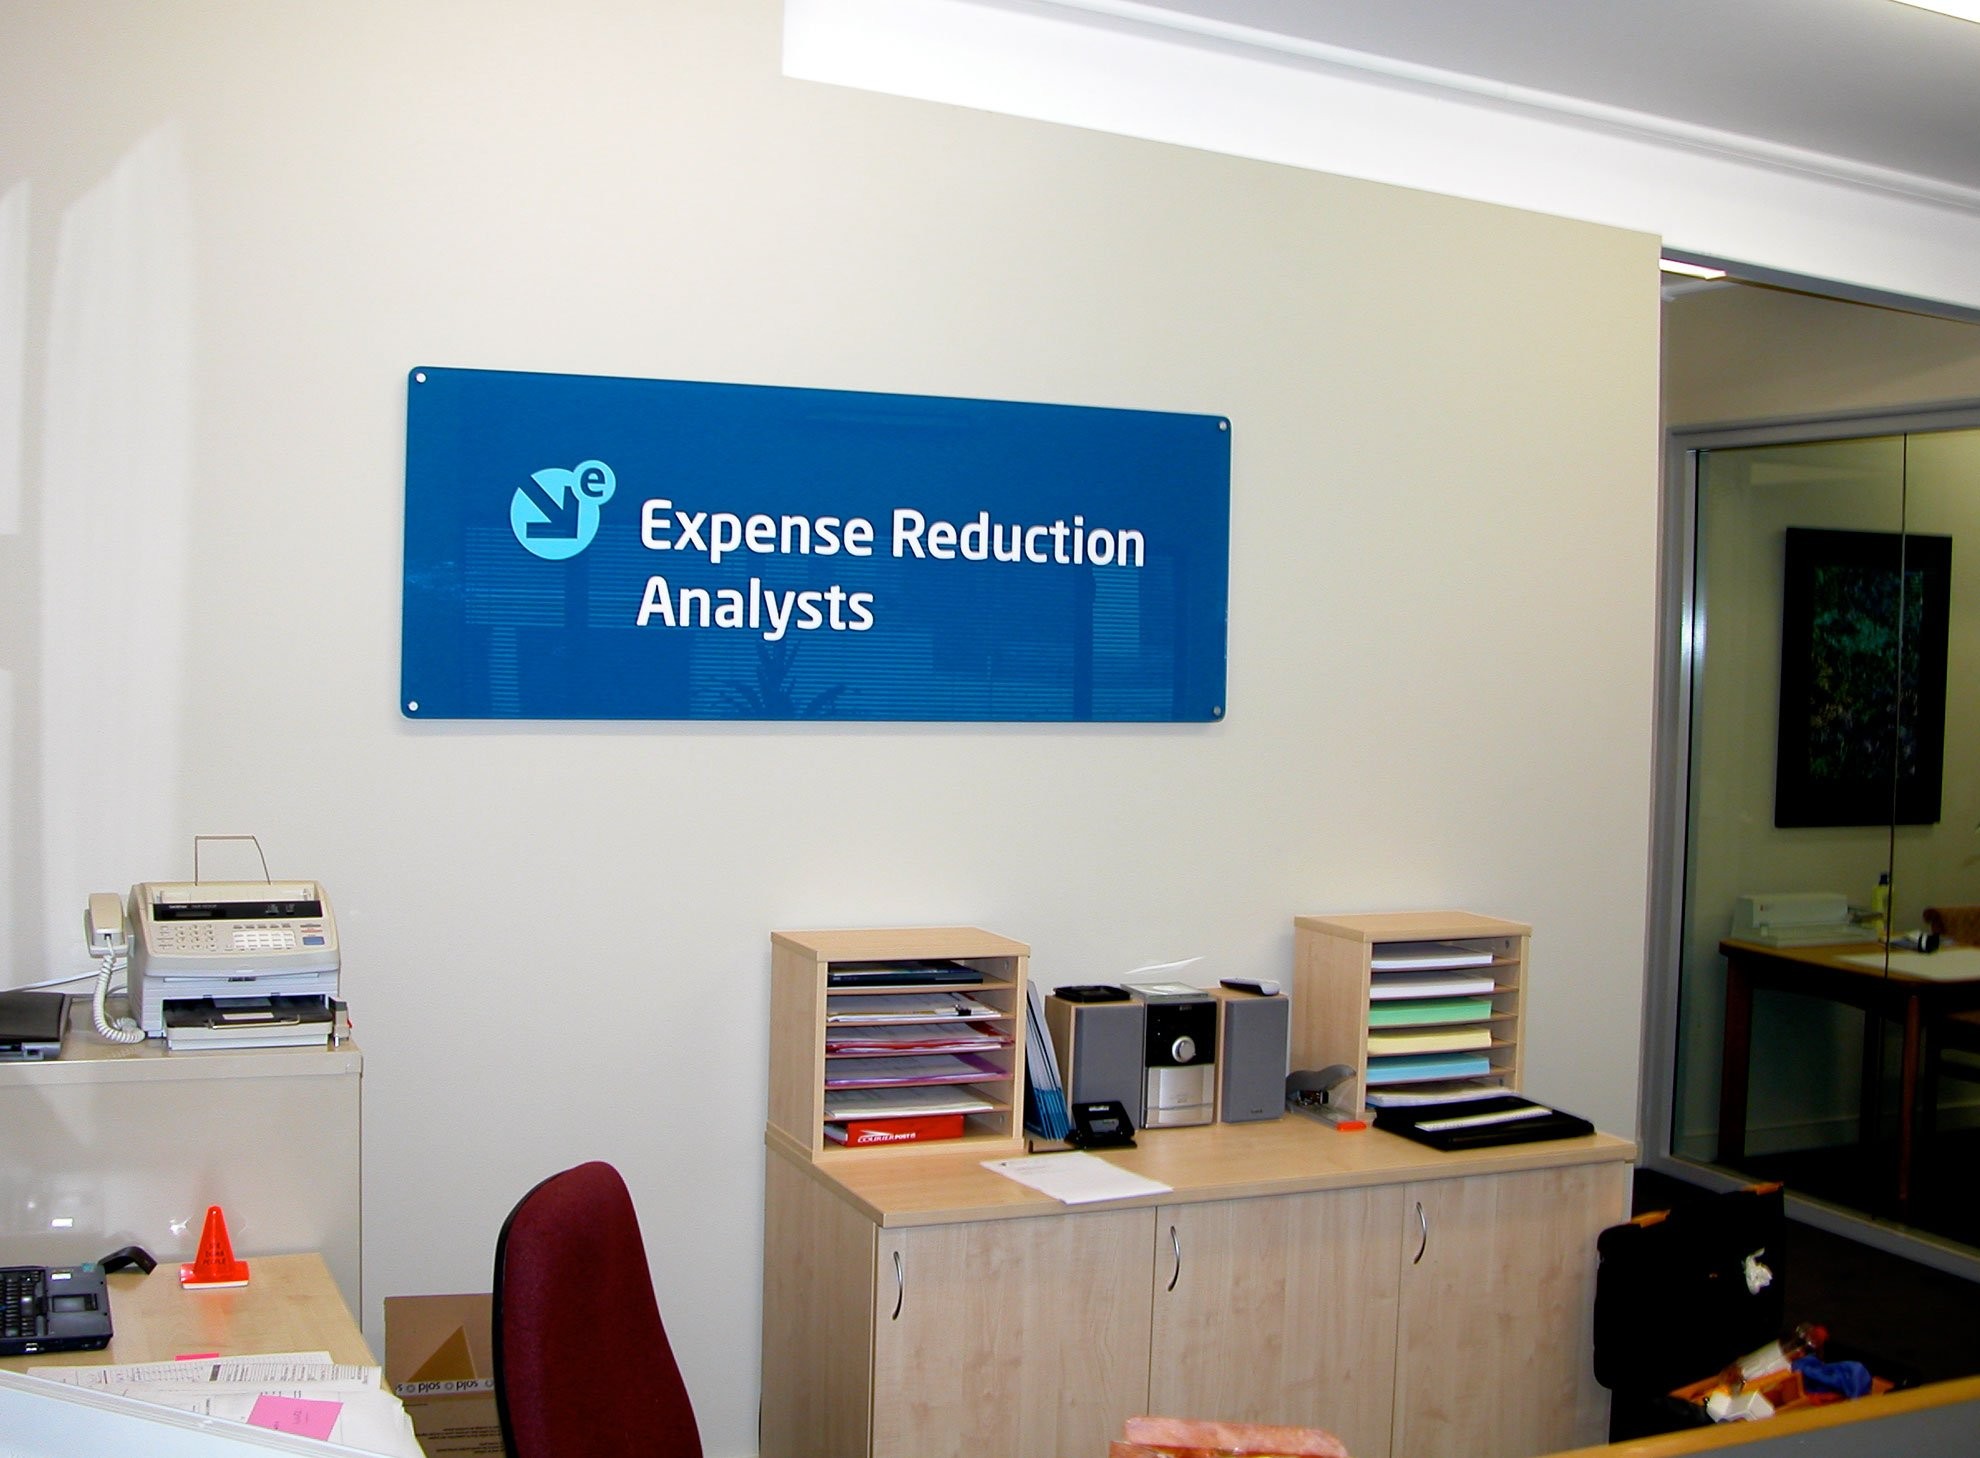 Perspex sign installed on office wall